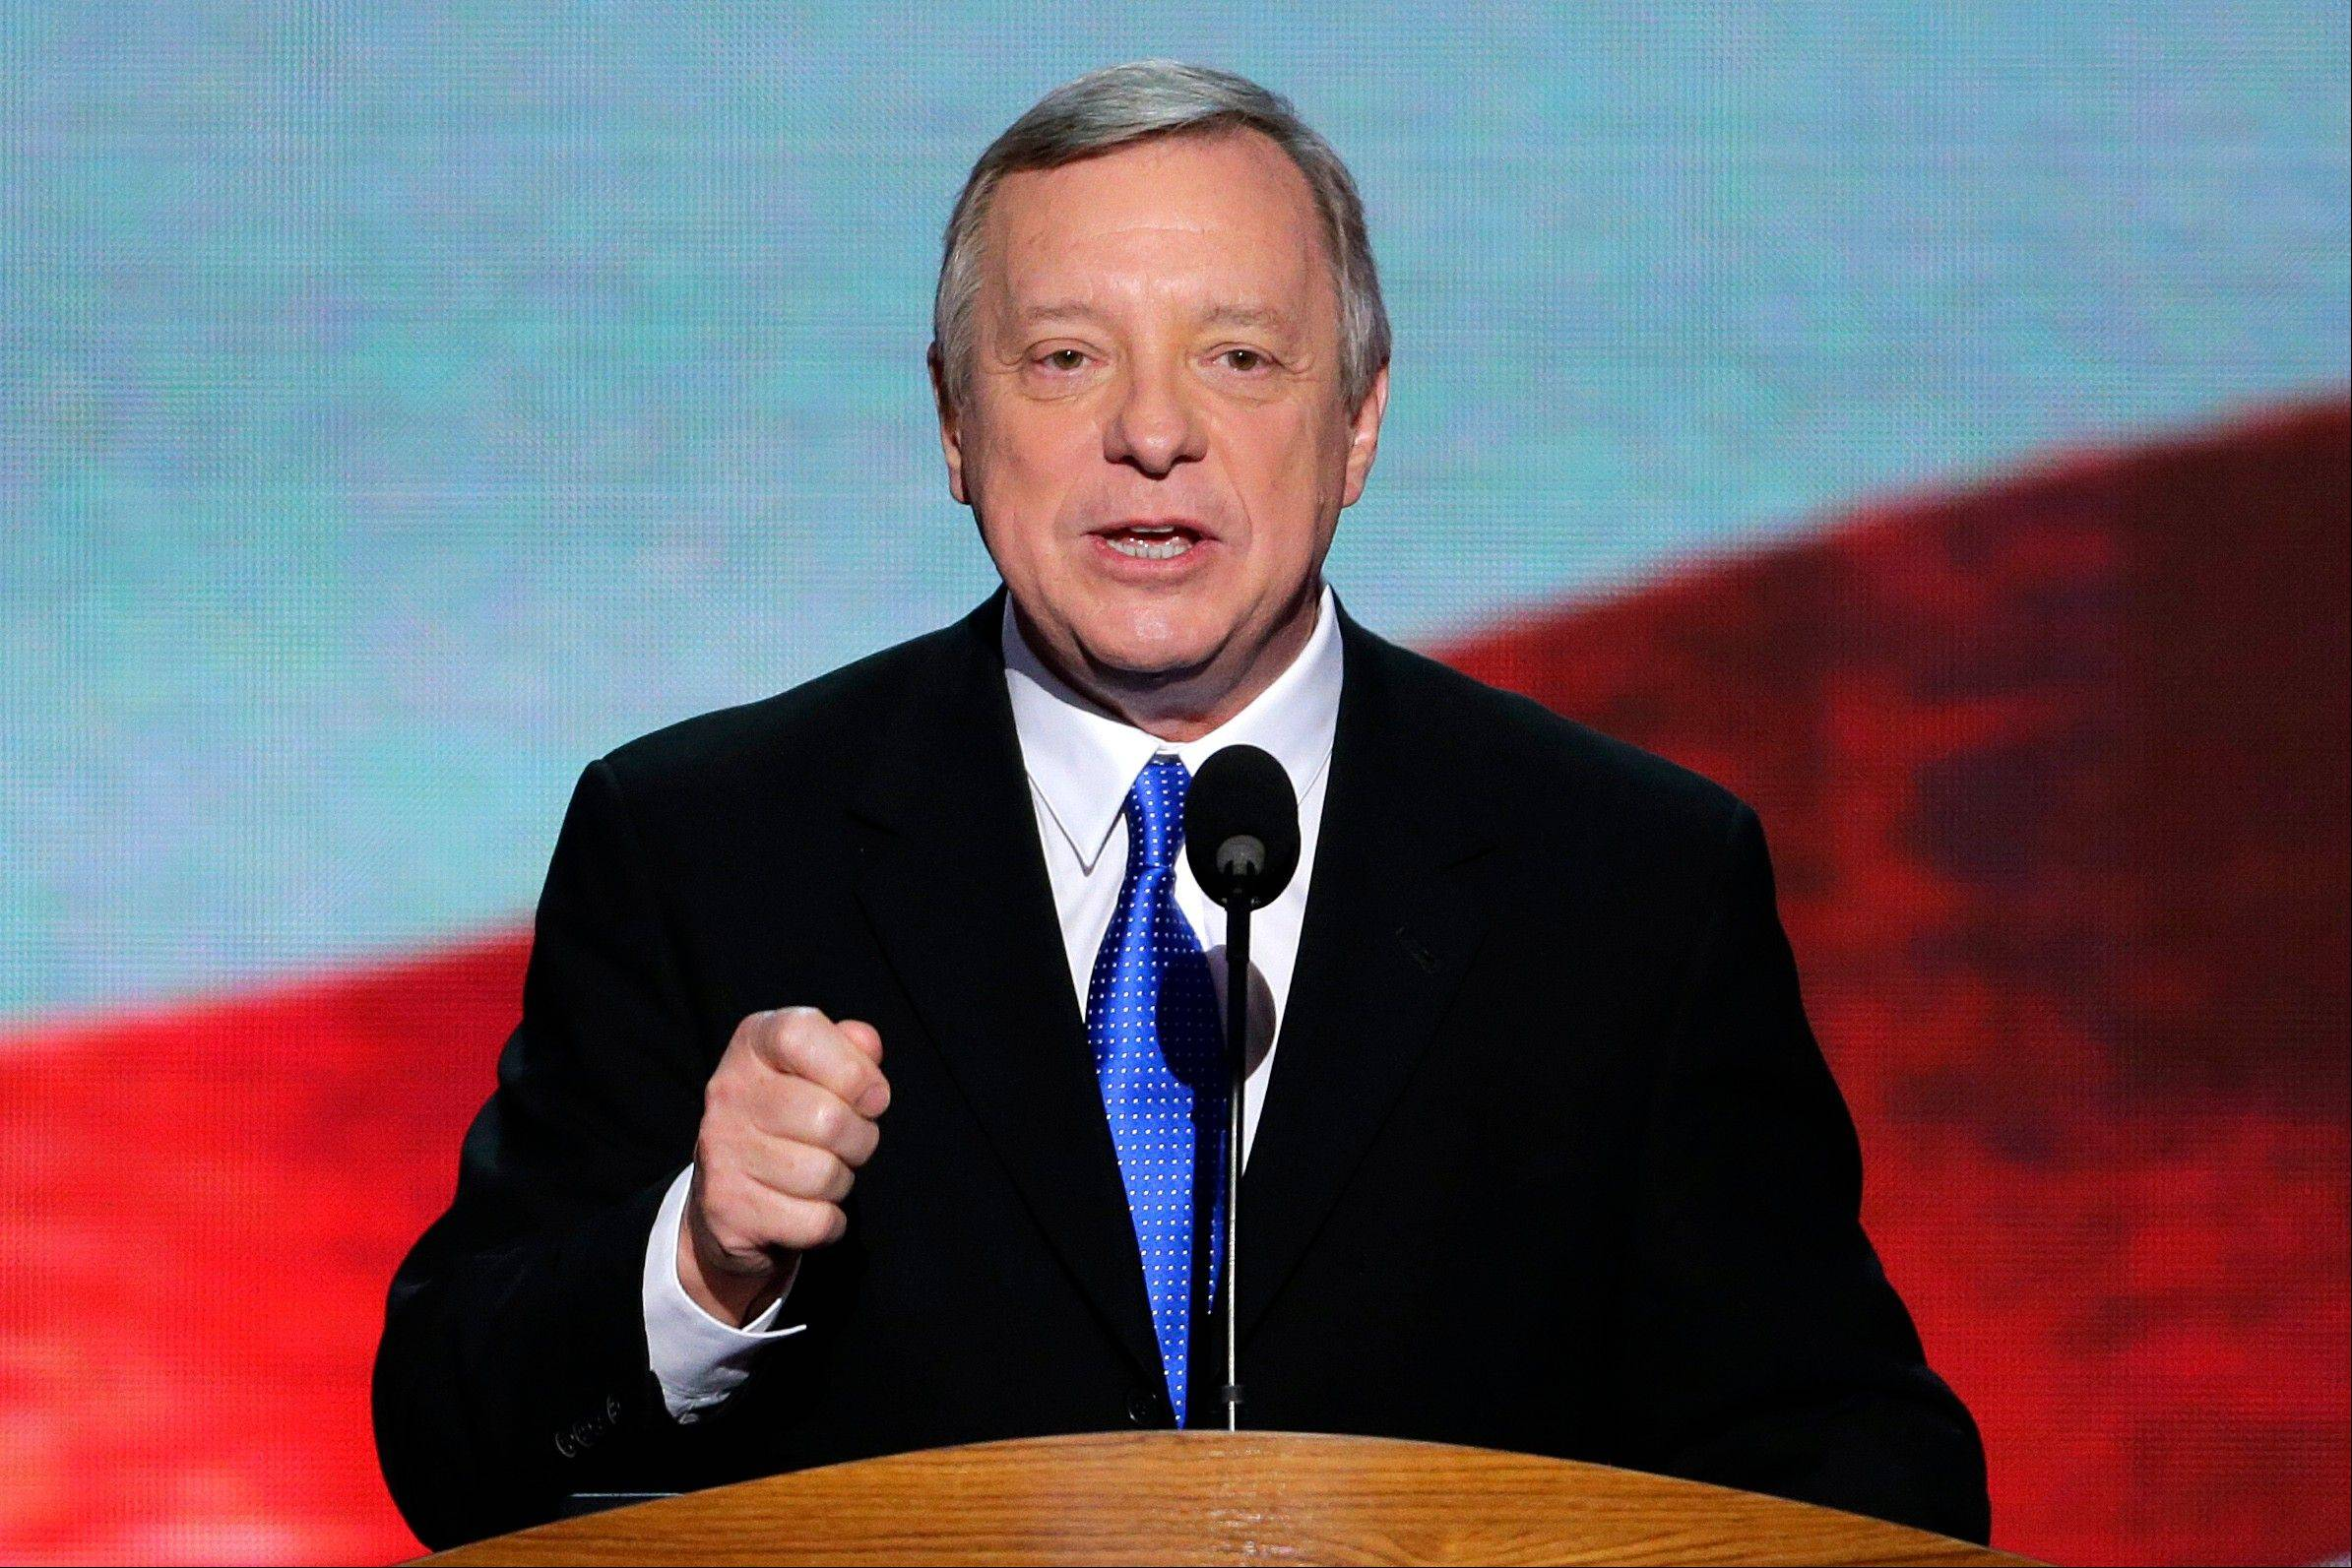 Durbin introduces Obama once again